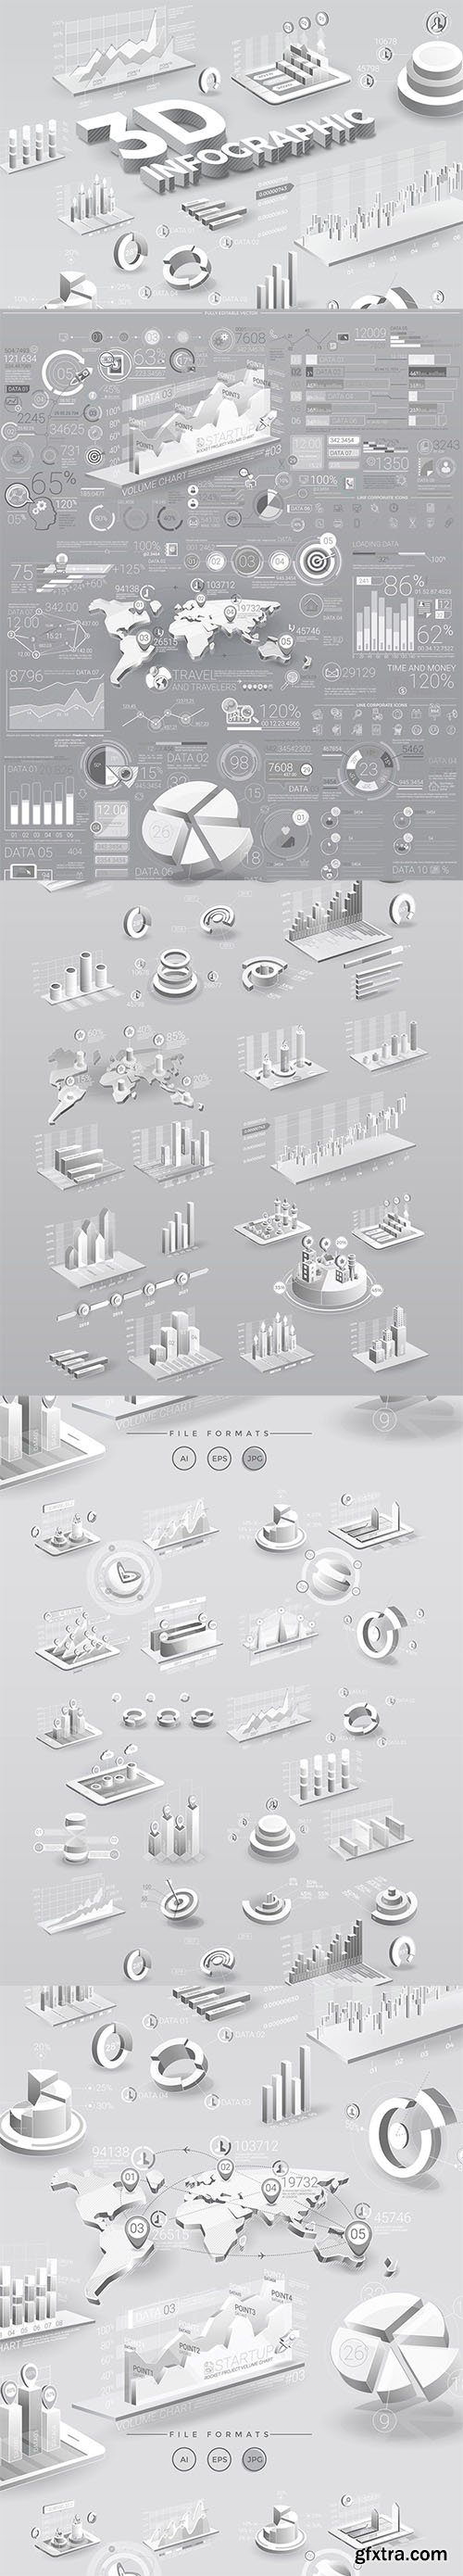 White Infographic Elements